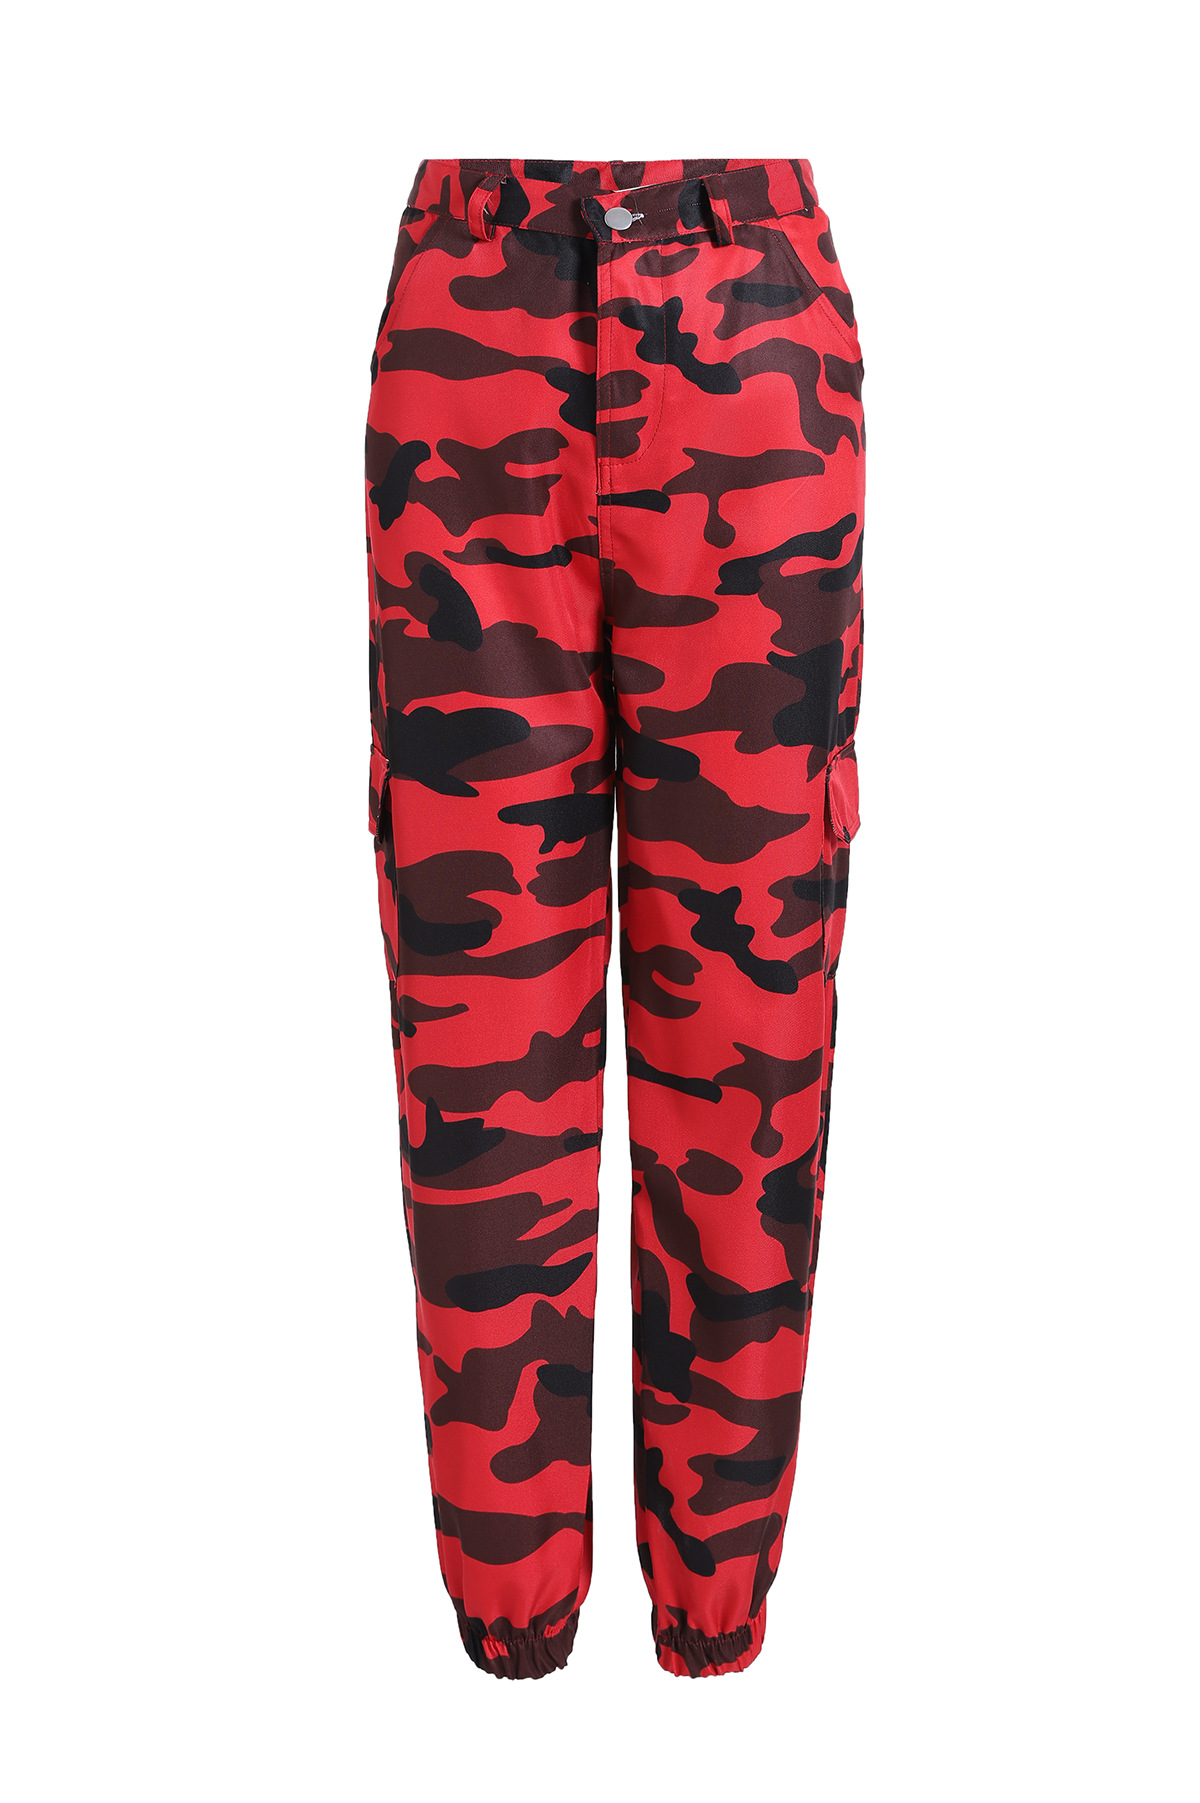 New Women Autumn Fashion Camouflage Trousers Plus Size Loose Harem Pants High Quality Sweatpants Red Camo Running Jogging Pants in Running Pants from Sports Entertainment